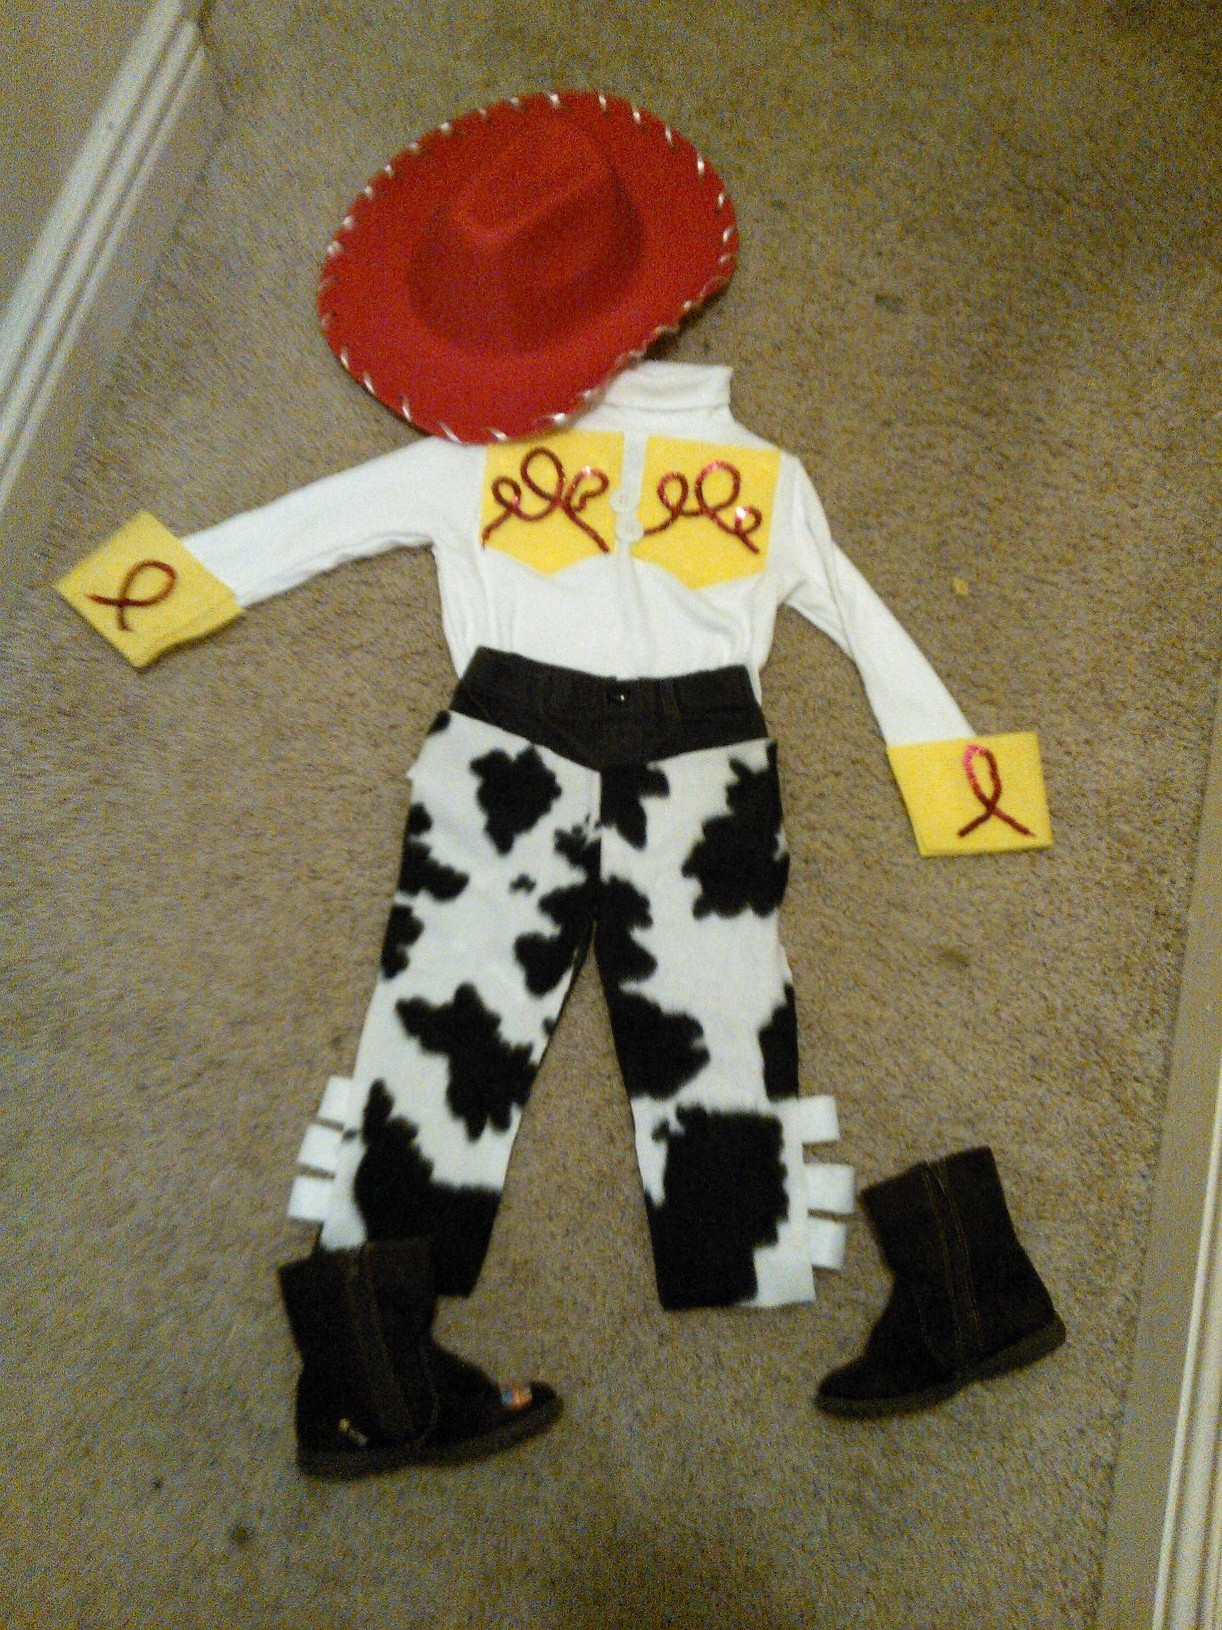 No sew jessie from toy story costume for halloween yee haw the sharing solutioingenieria Images